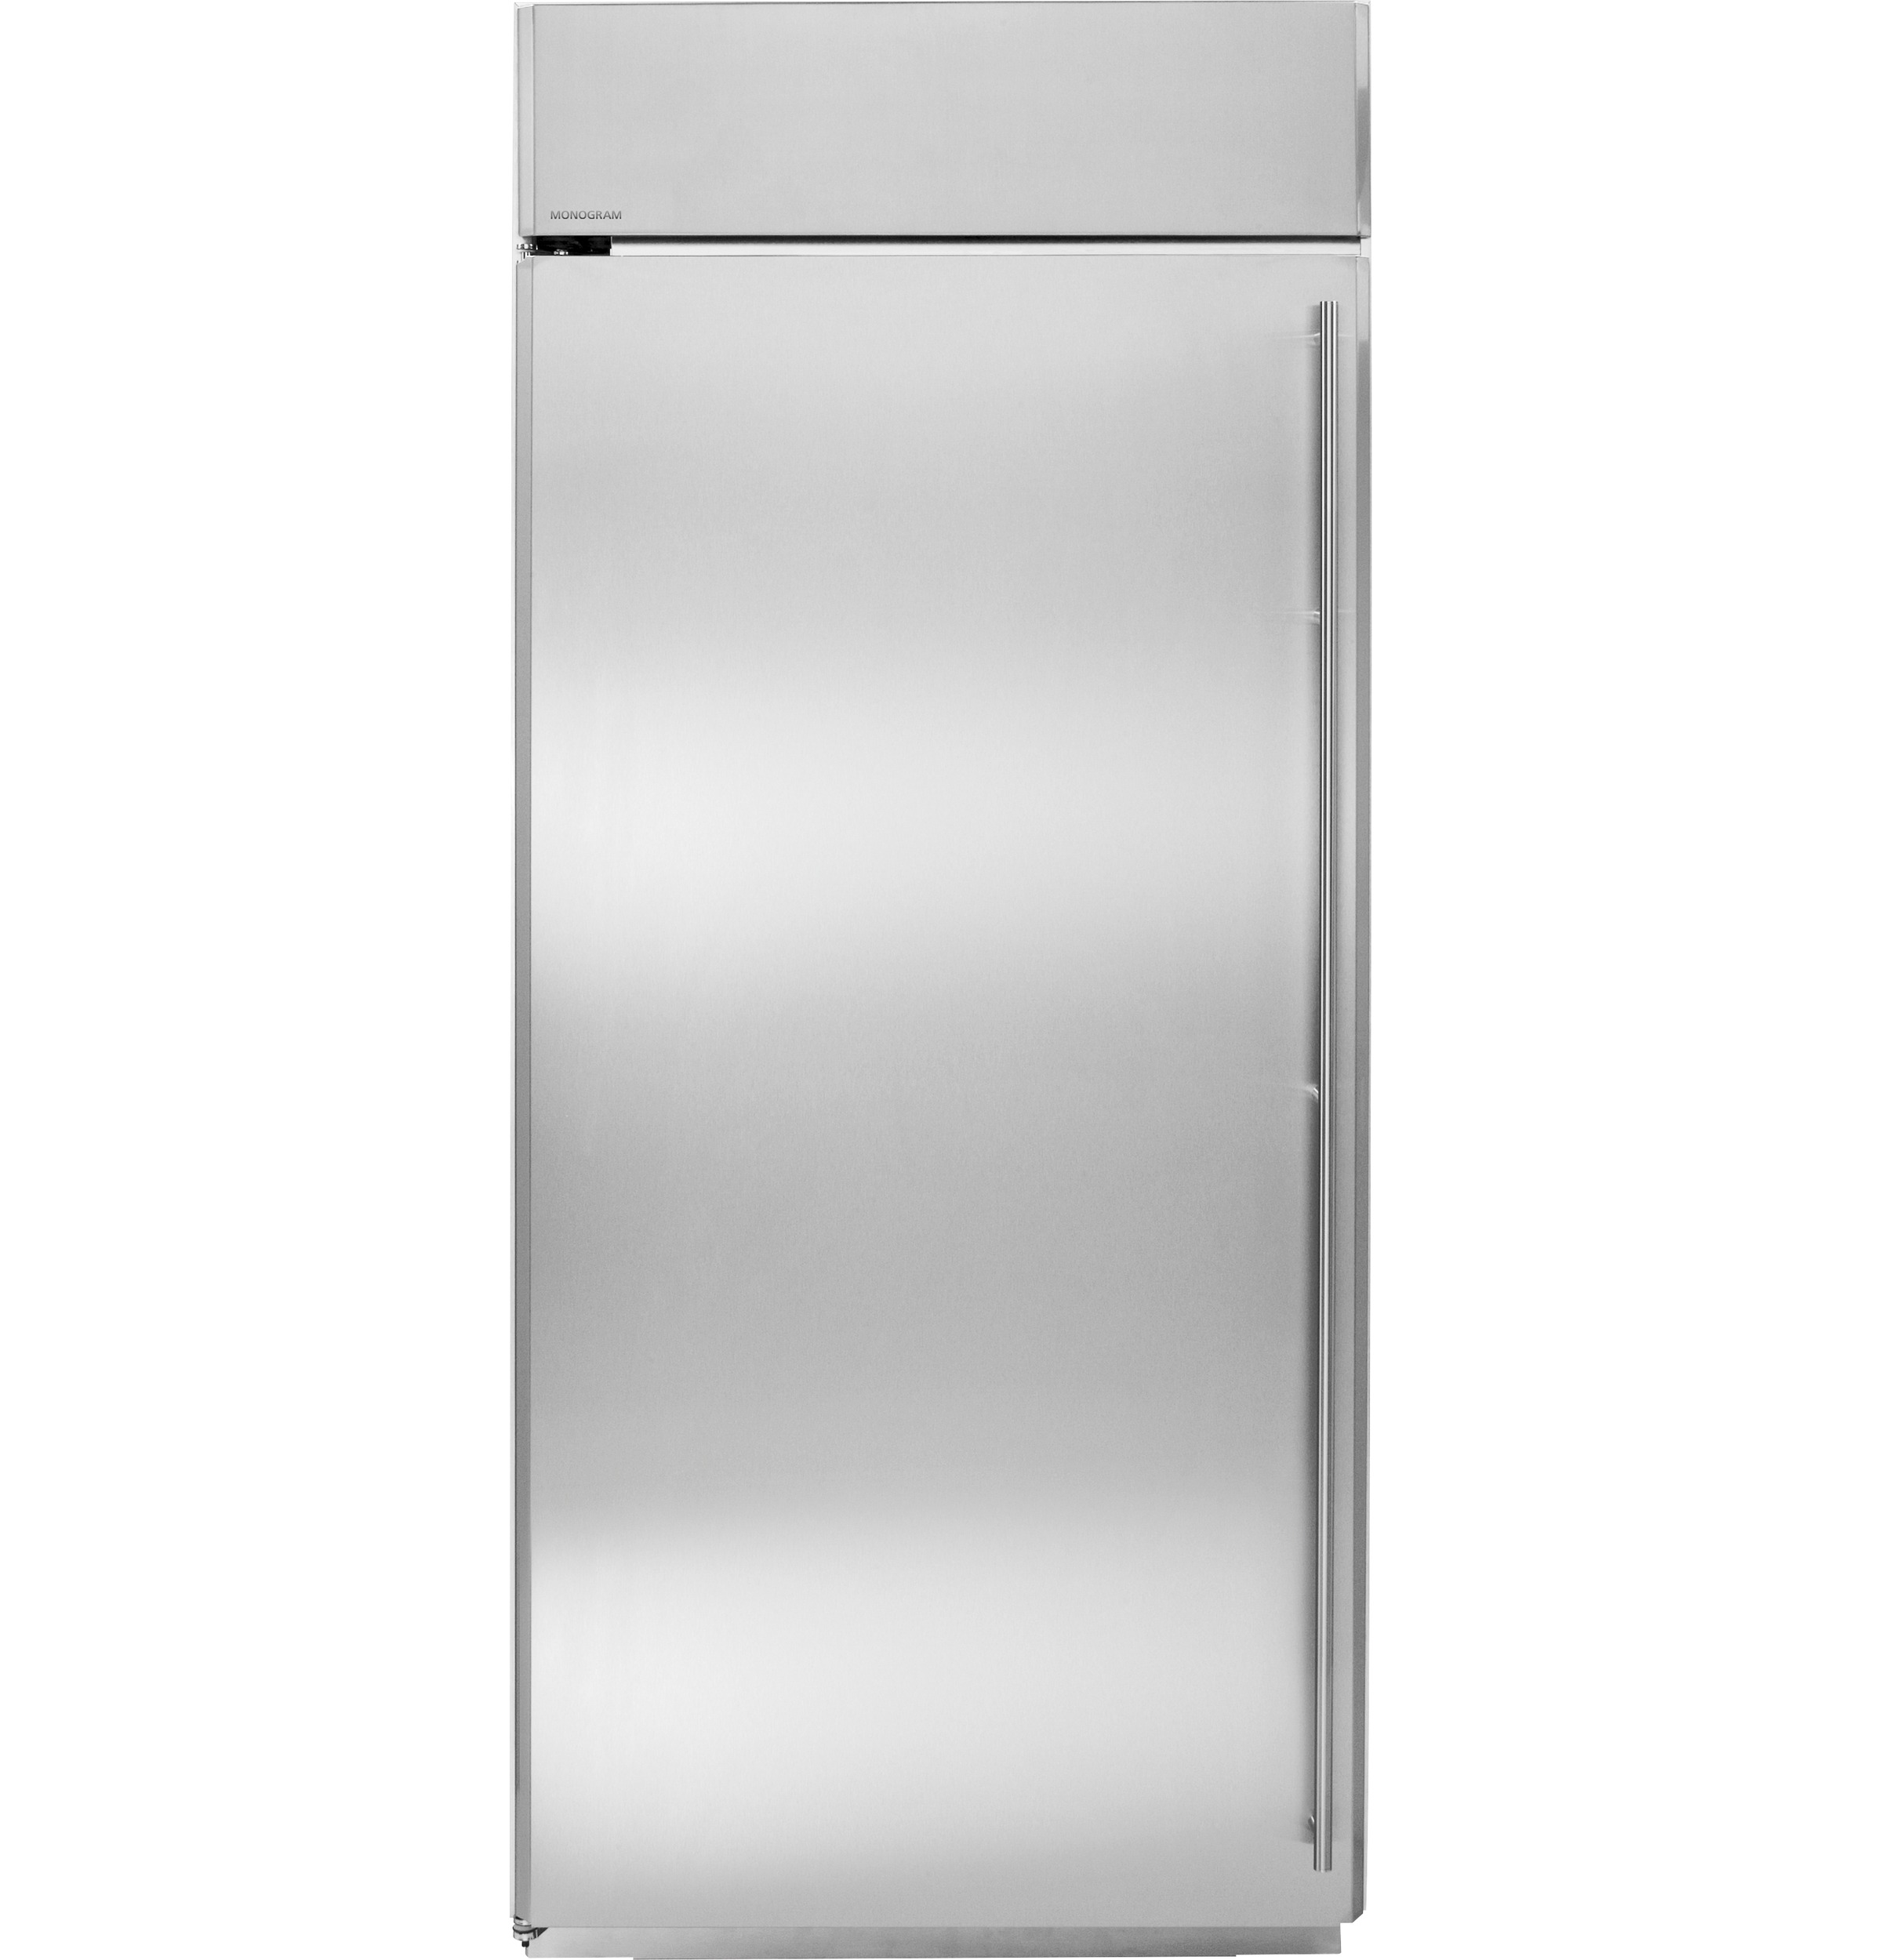 "Model: ZIFS360NHLH | Monogram Monogram 36"" Built-In All Freezer"